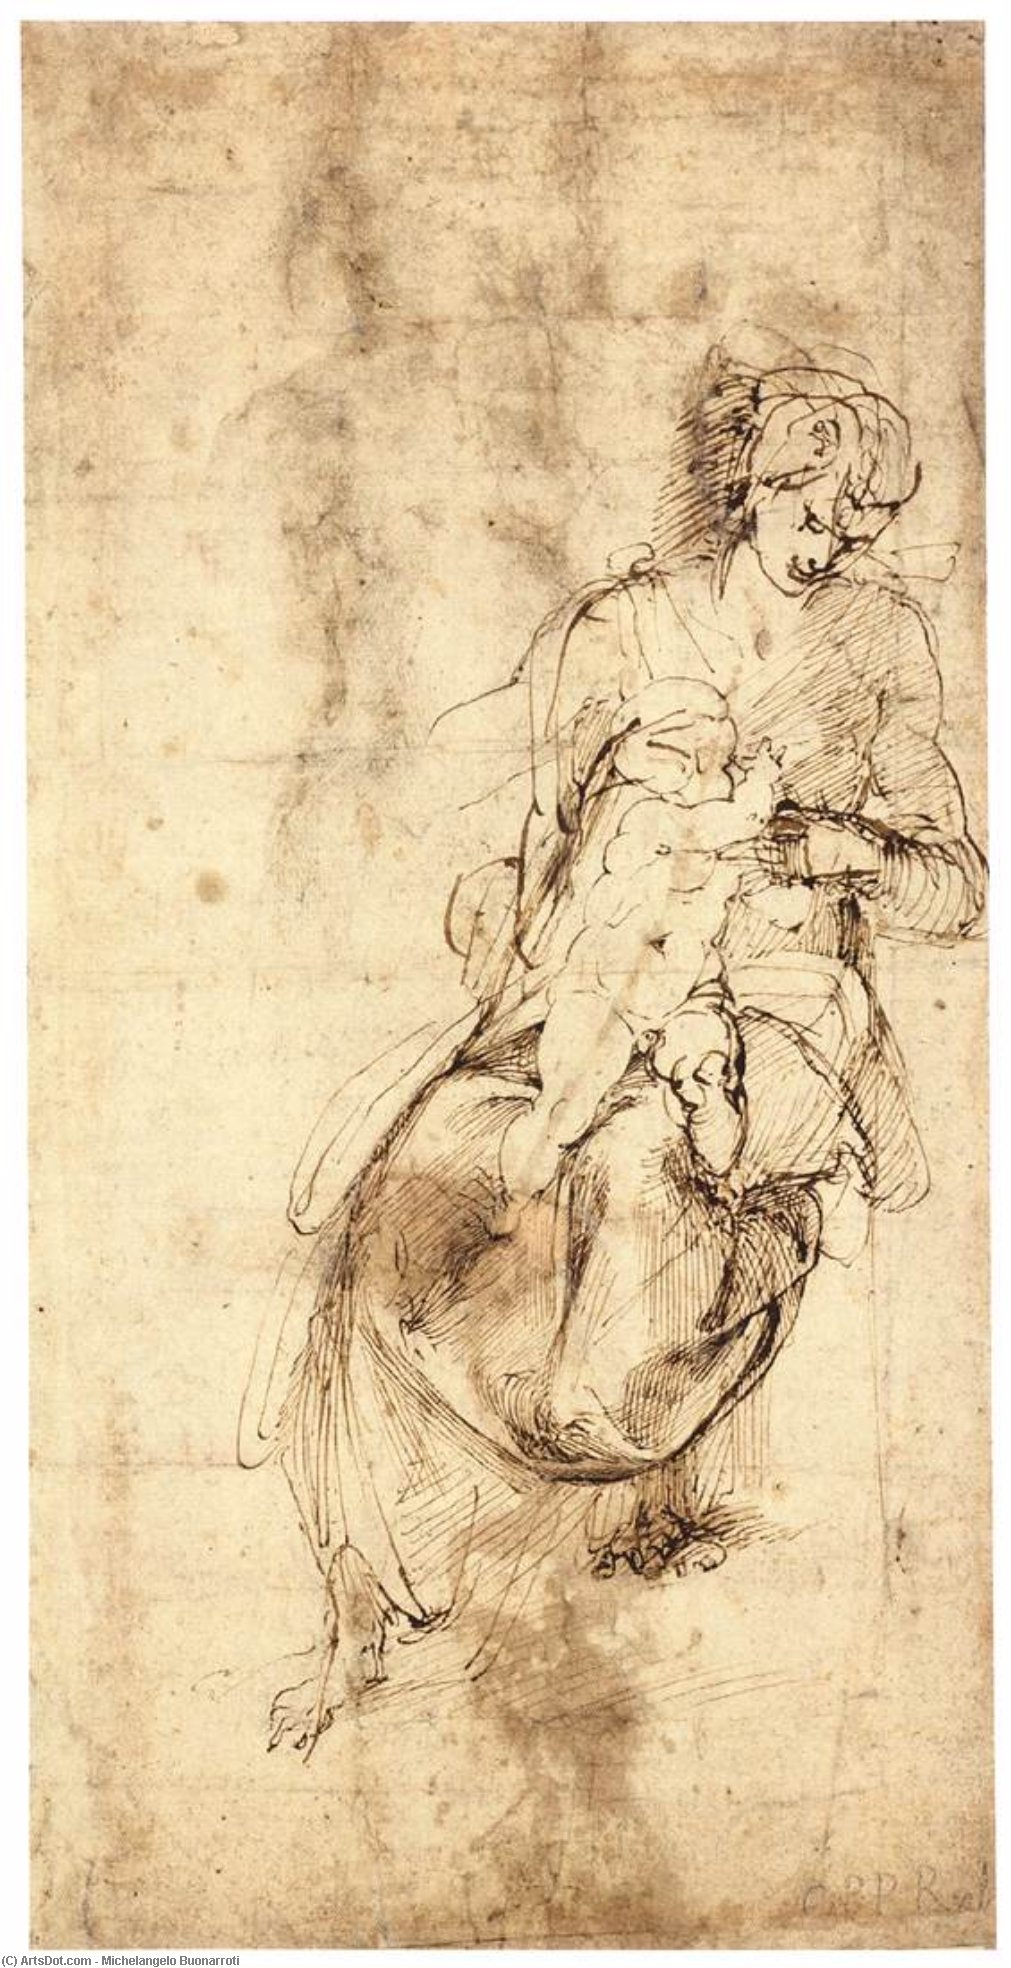 michelangelo drawing madonna and child 1525 - HD1011×1968